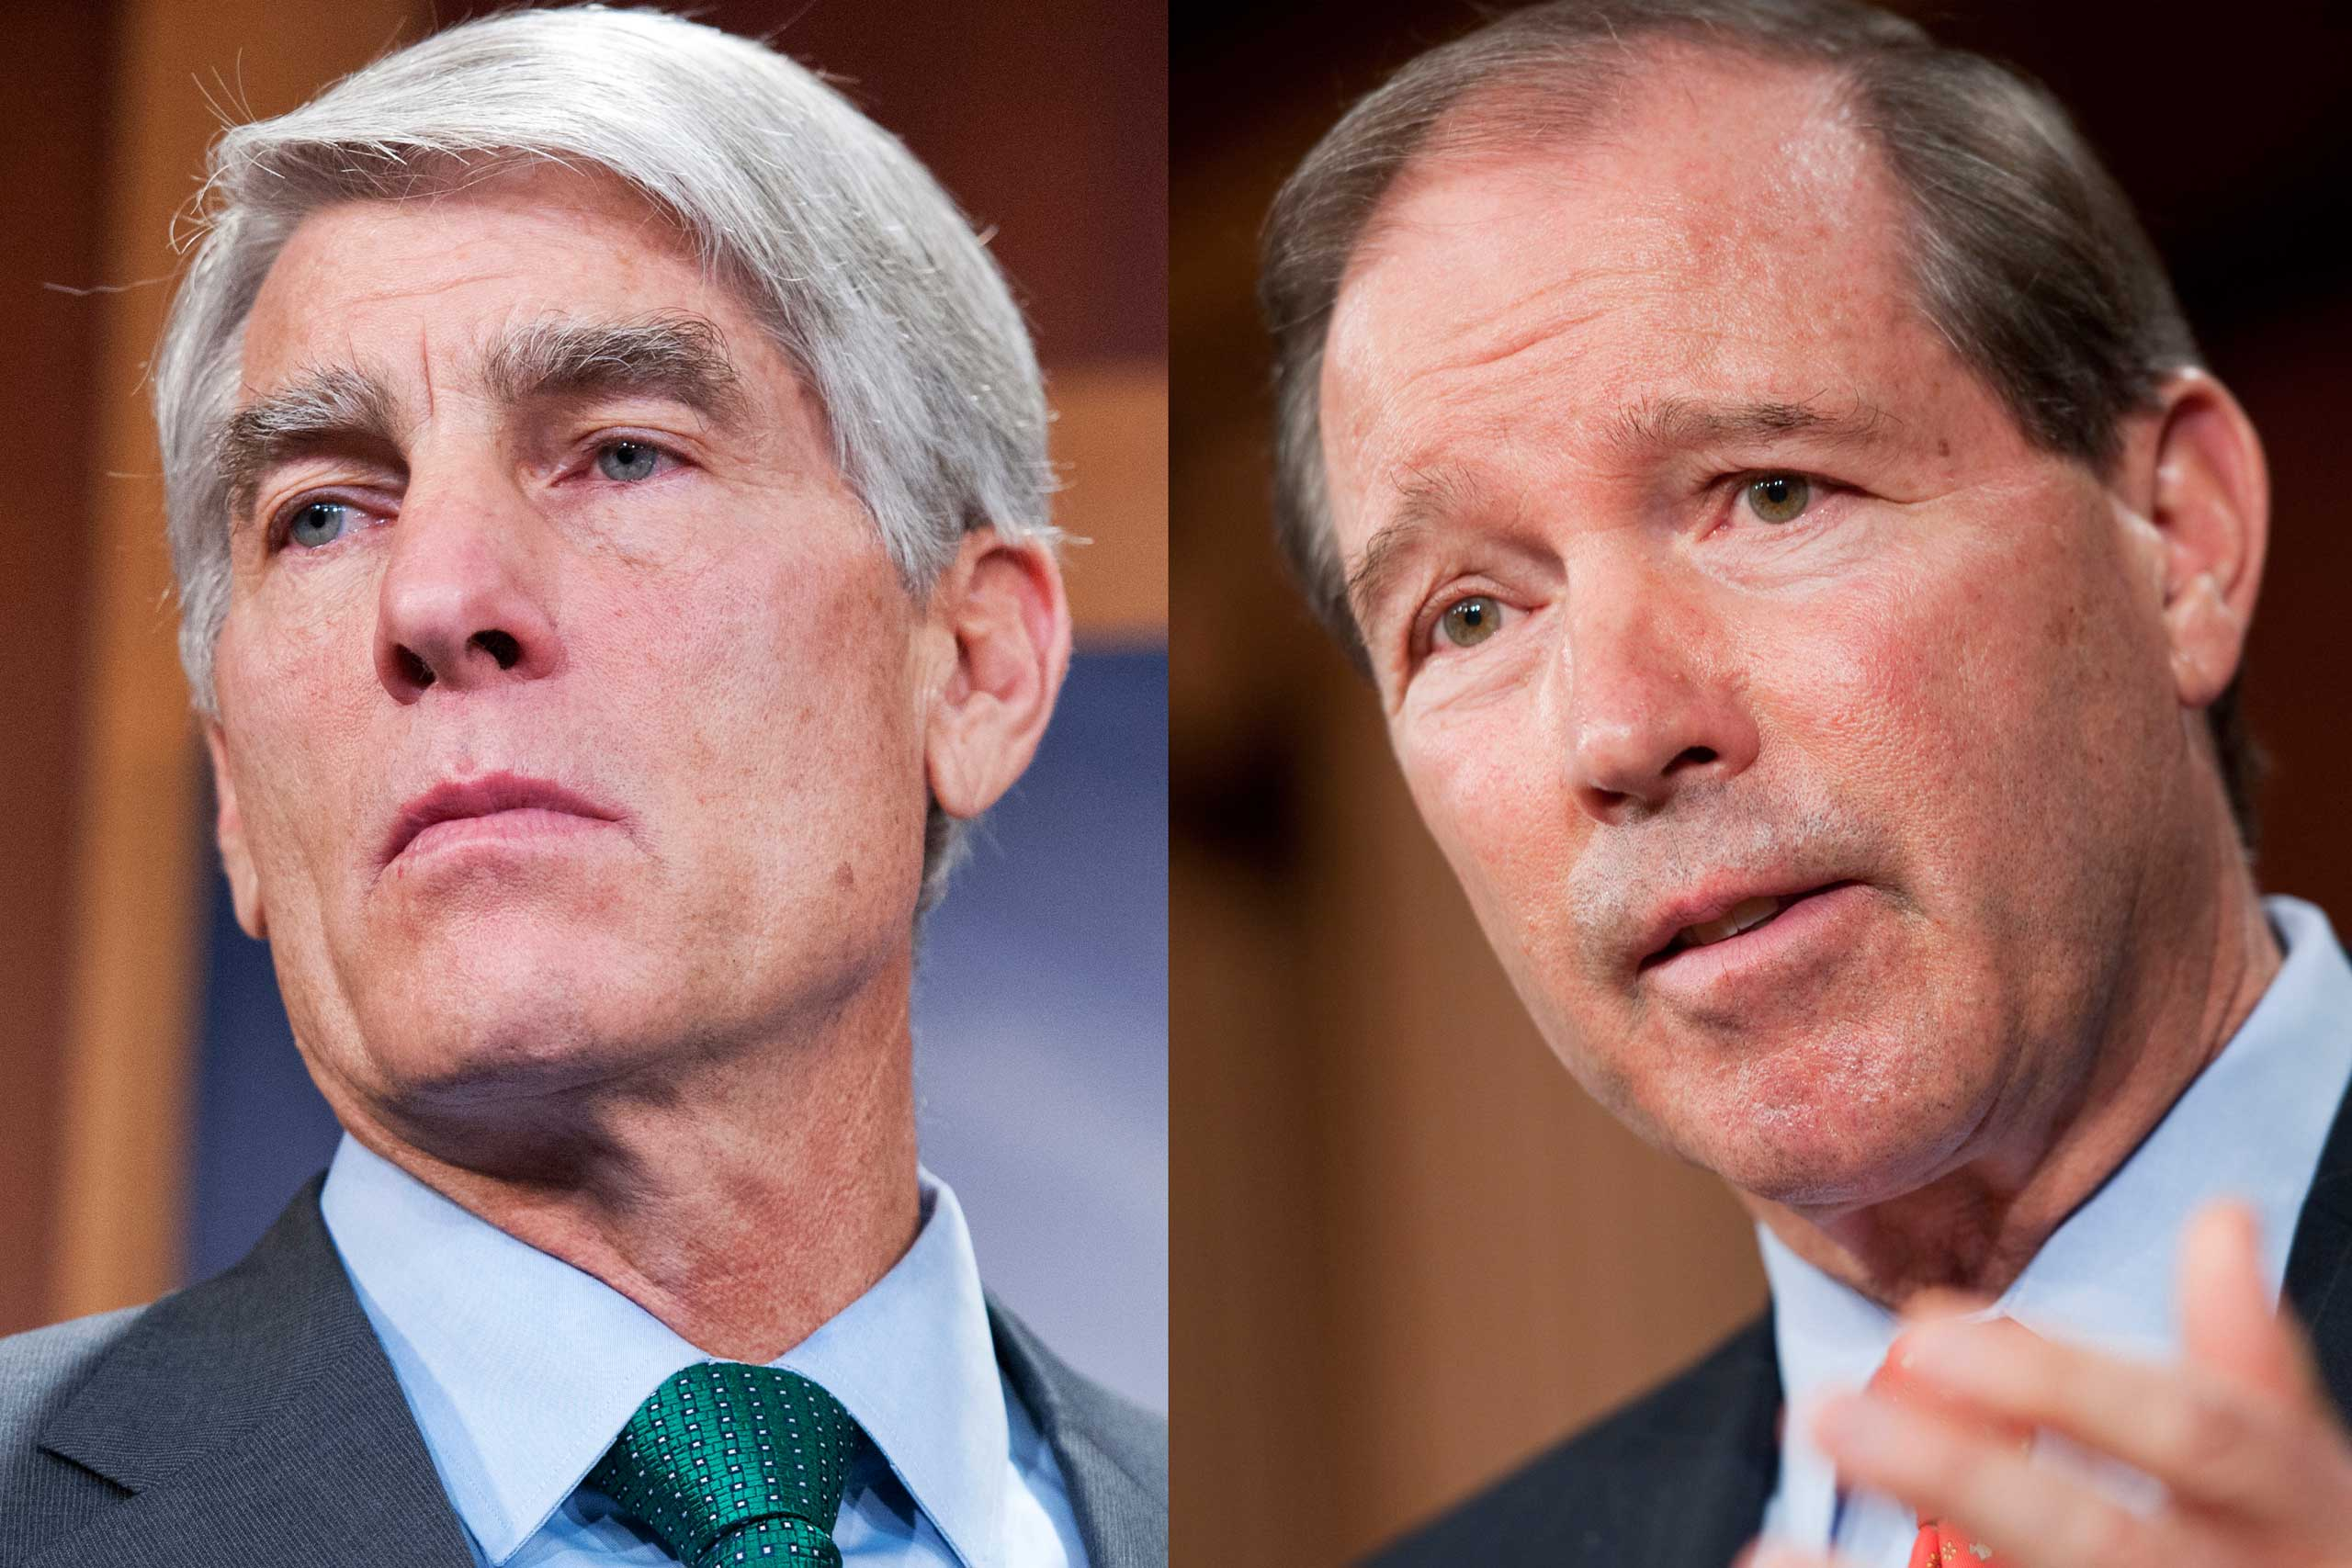 Descended from Mormon pioneers, the Udall family have held high political positions from states across the American West. To cite one of many examples, Stewart Udall served as Secretary of the Department of Interior under President Lyndon Johnson. Today, his son Tom Udall (right) represents New Mexico in the U.S. Senate, and his nephew Mark Udall (left) represents Colorado in the same body.